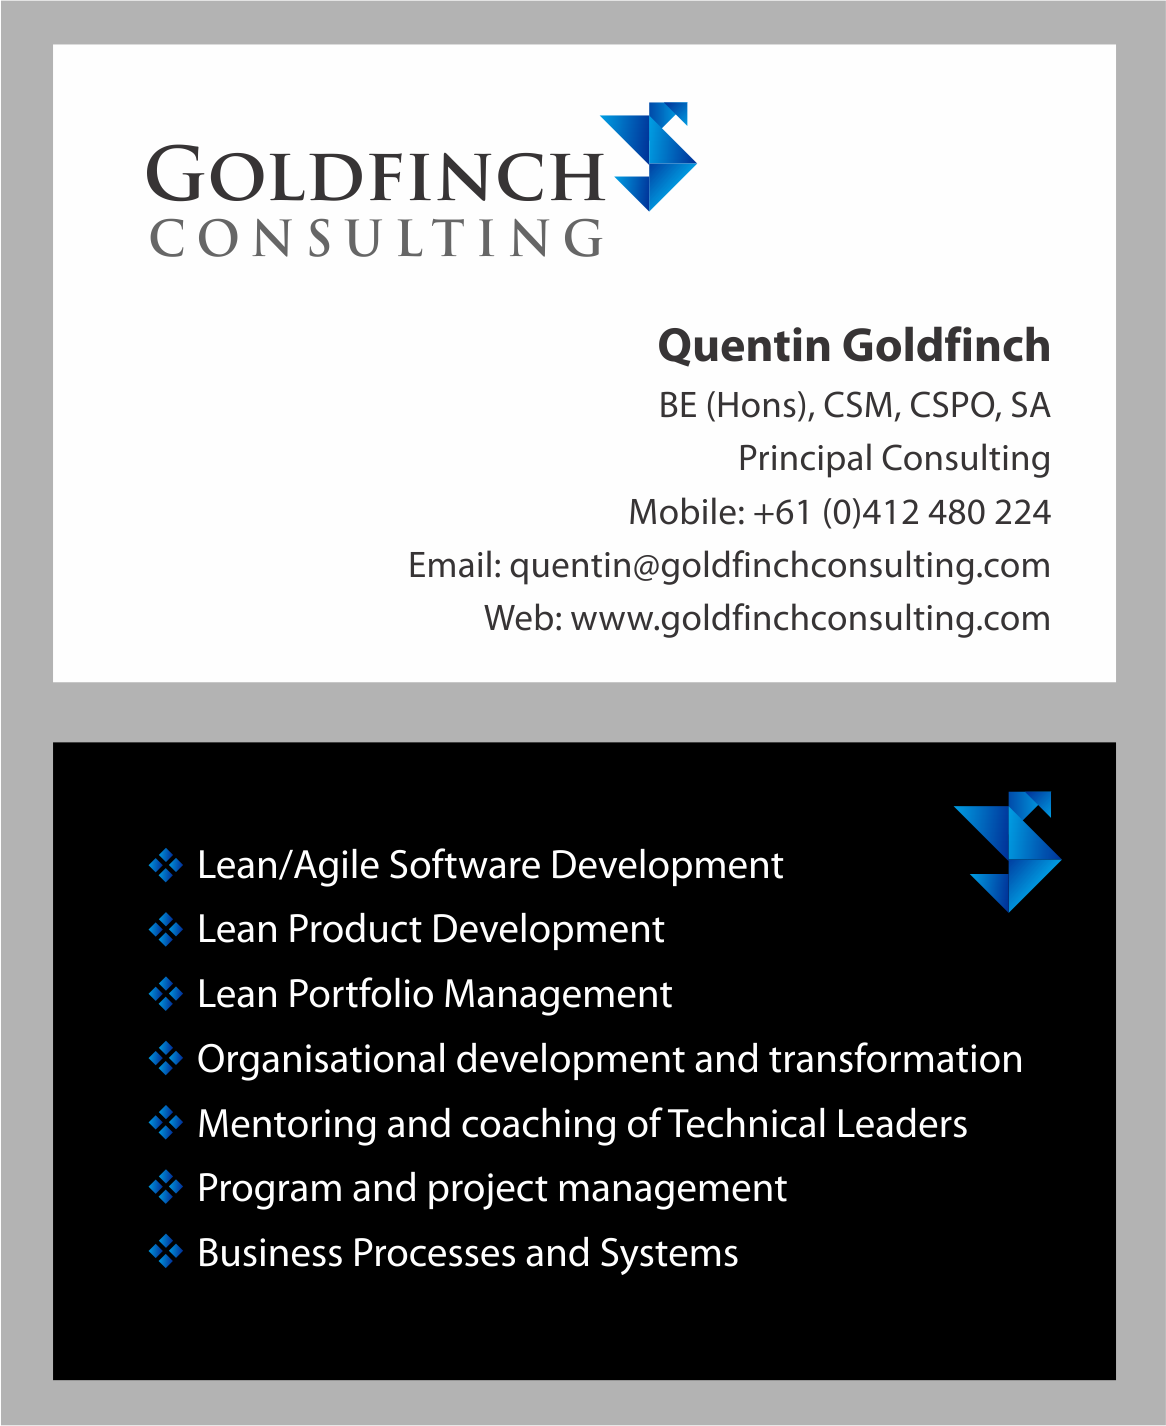 Professional business cards australia images card design and card modern professional business card design for goldfinch consulting business card design by diana999 for rd and reheart Gallery